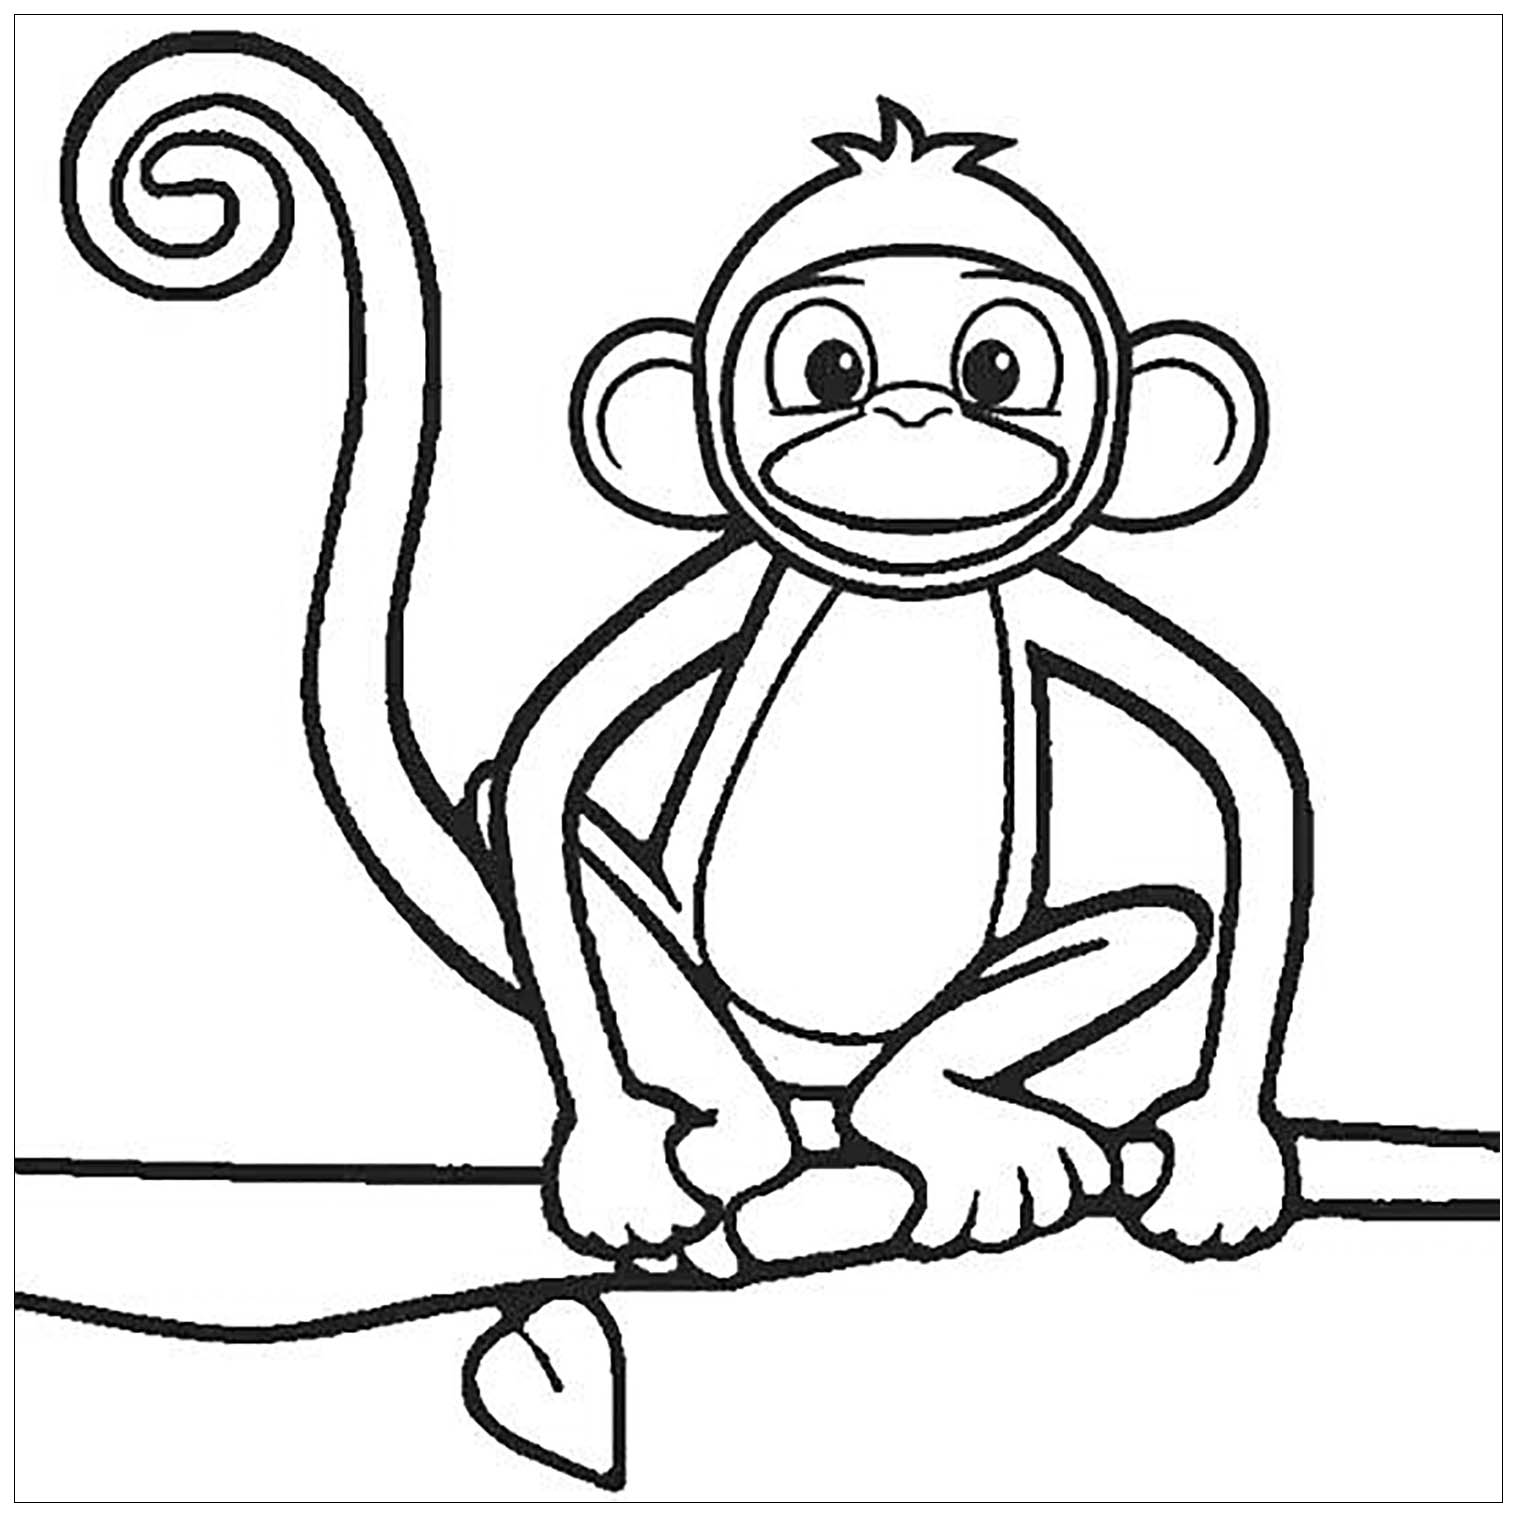 coloring picture of monkey monkey coloring pages for kids to print monkey picture coloring of